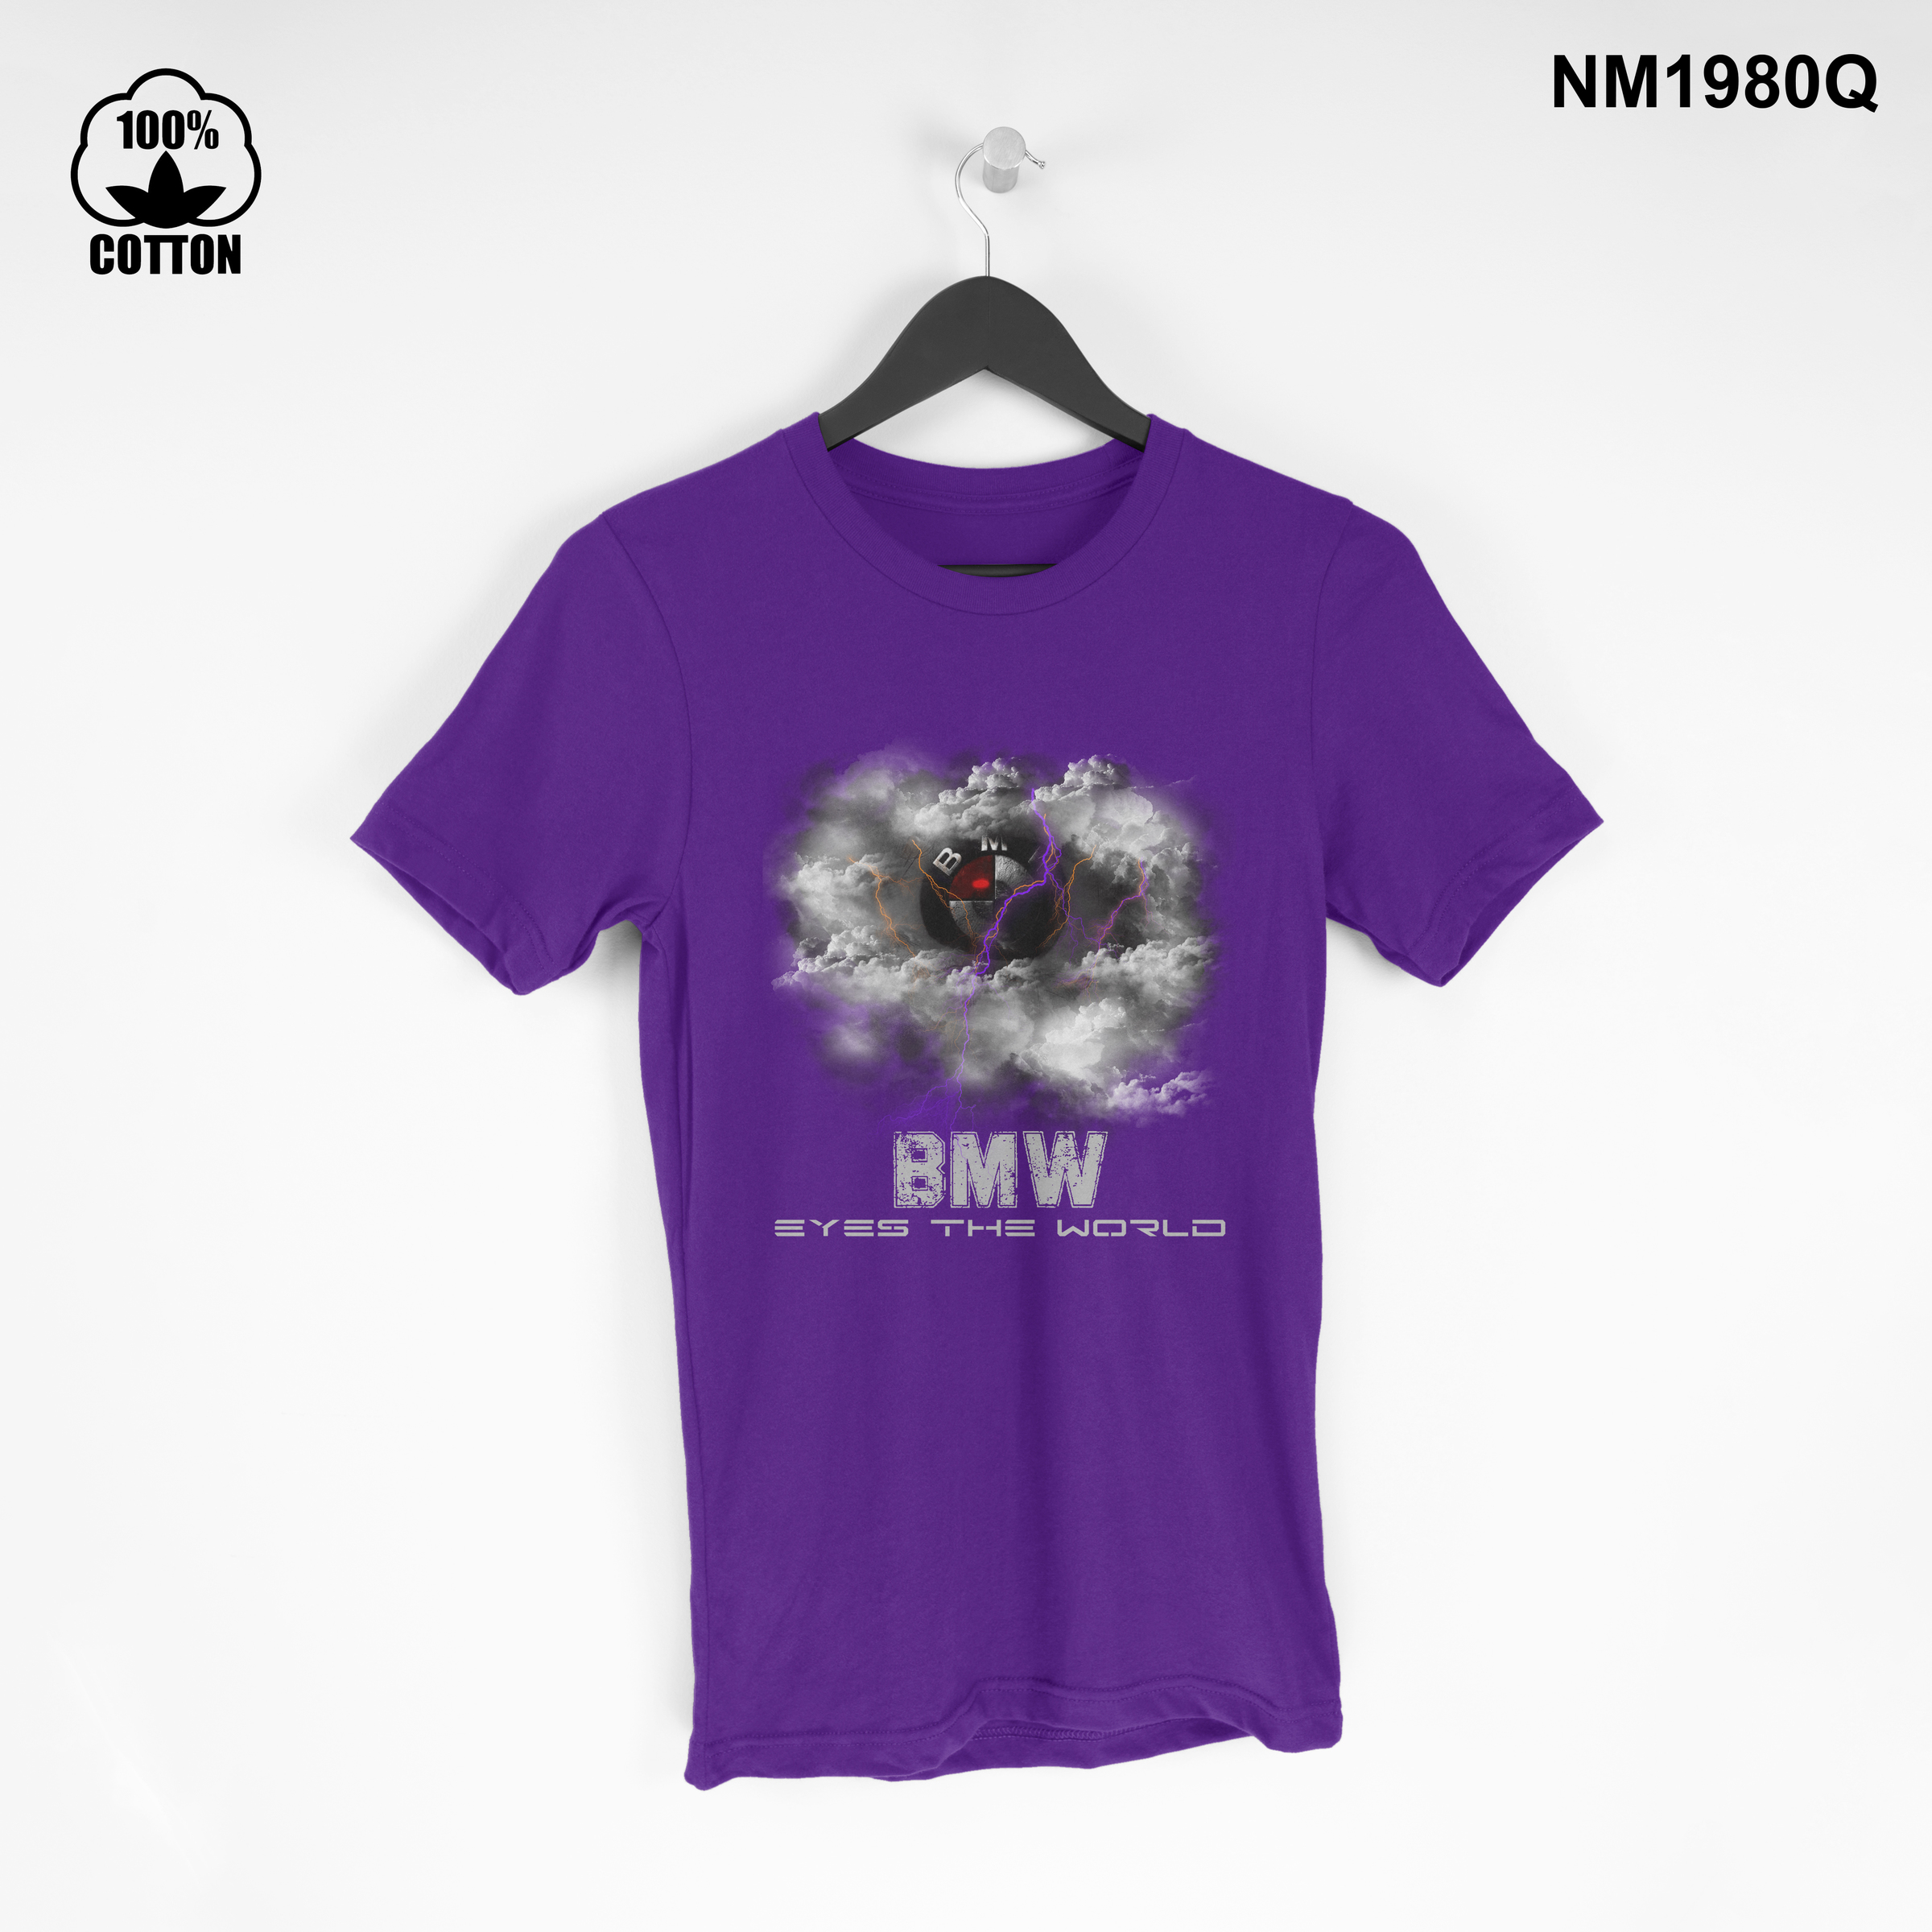 1.44 New Design Creative BMW eyes The World T Shirt Tee Unisex blue violet.jpg